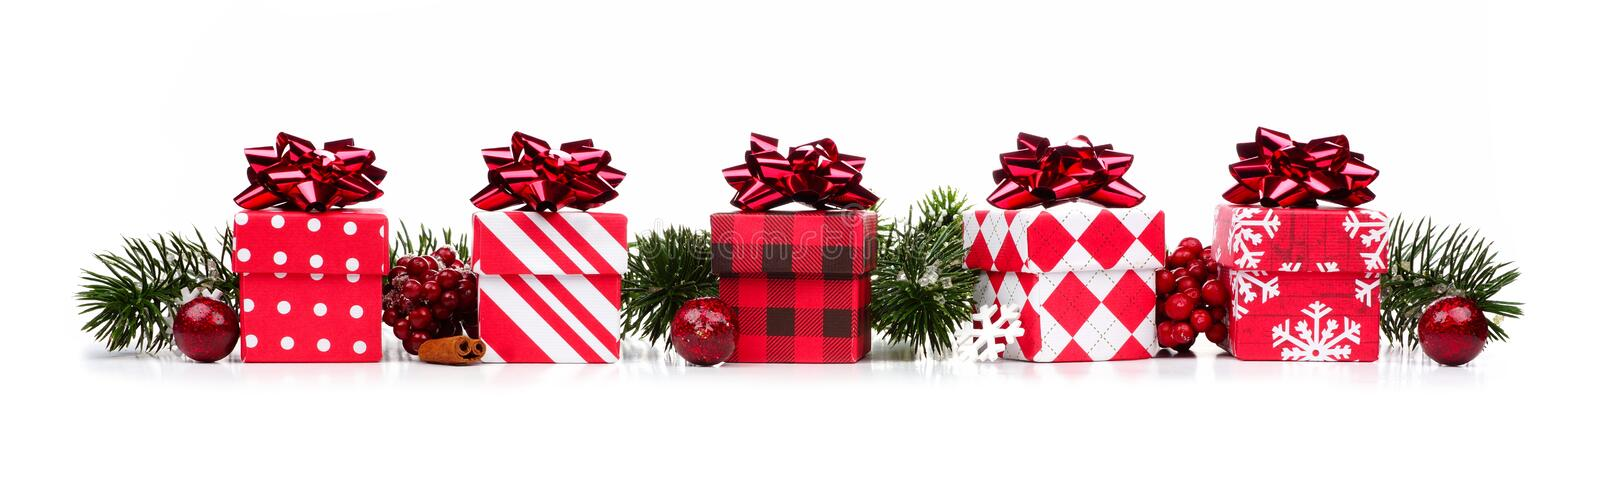 Christmas border of red and white gift boxes and branches stock image